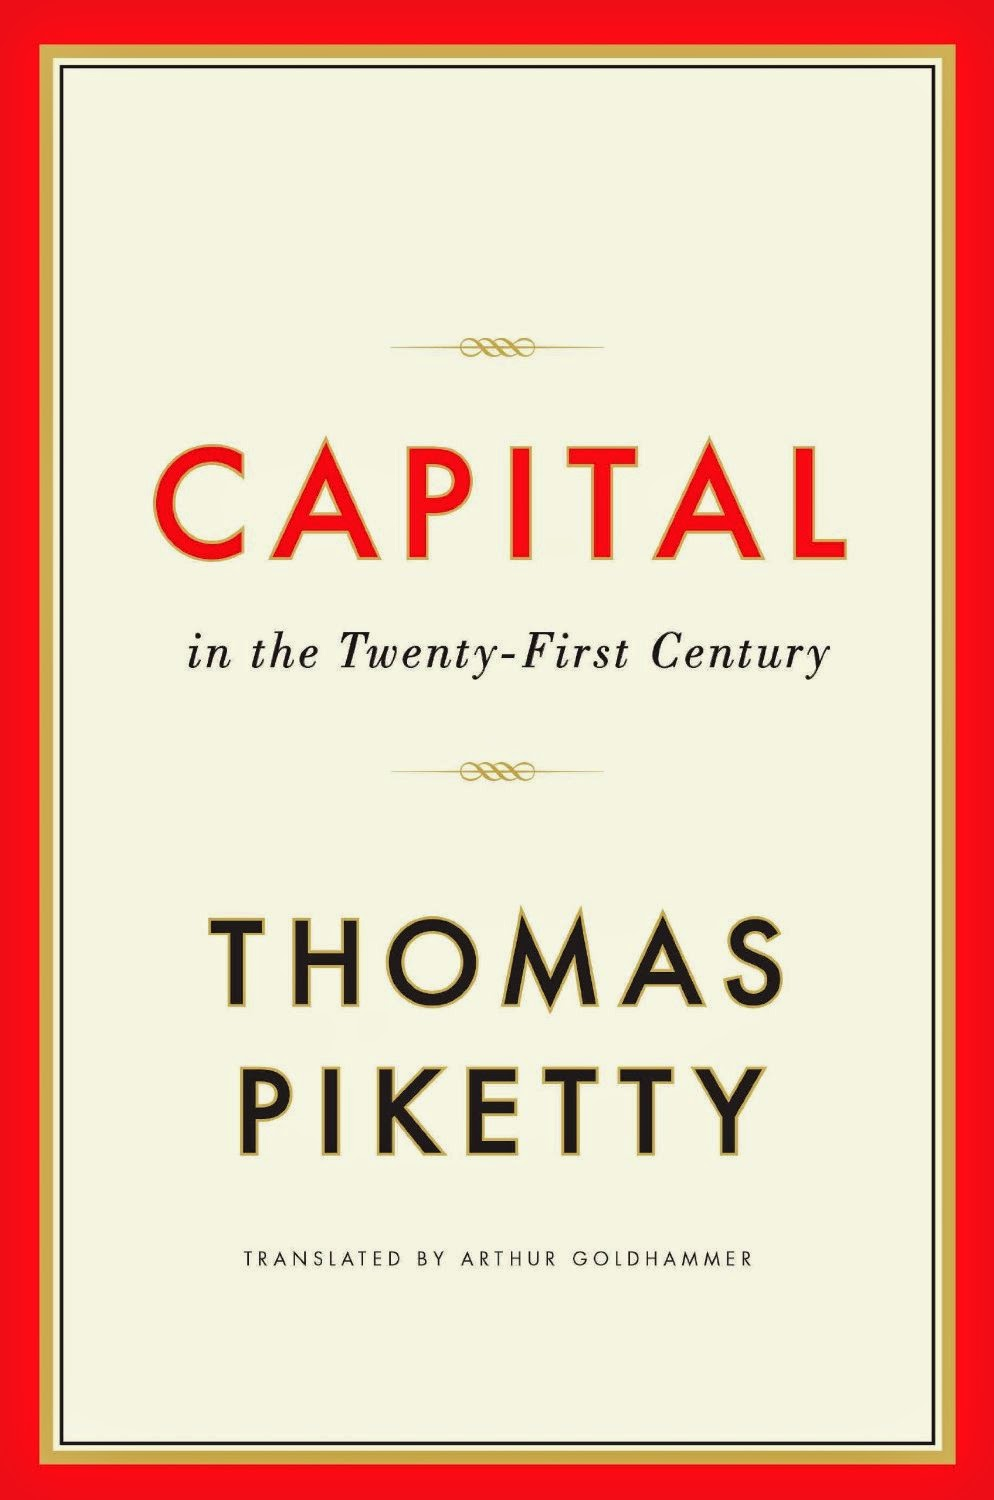 http://discover.halifaxpubliclibraries.ca/?q=title:capital%20in%20the%20twenty-first%20century